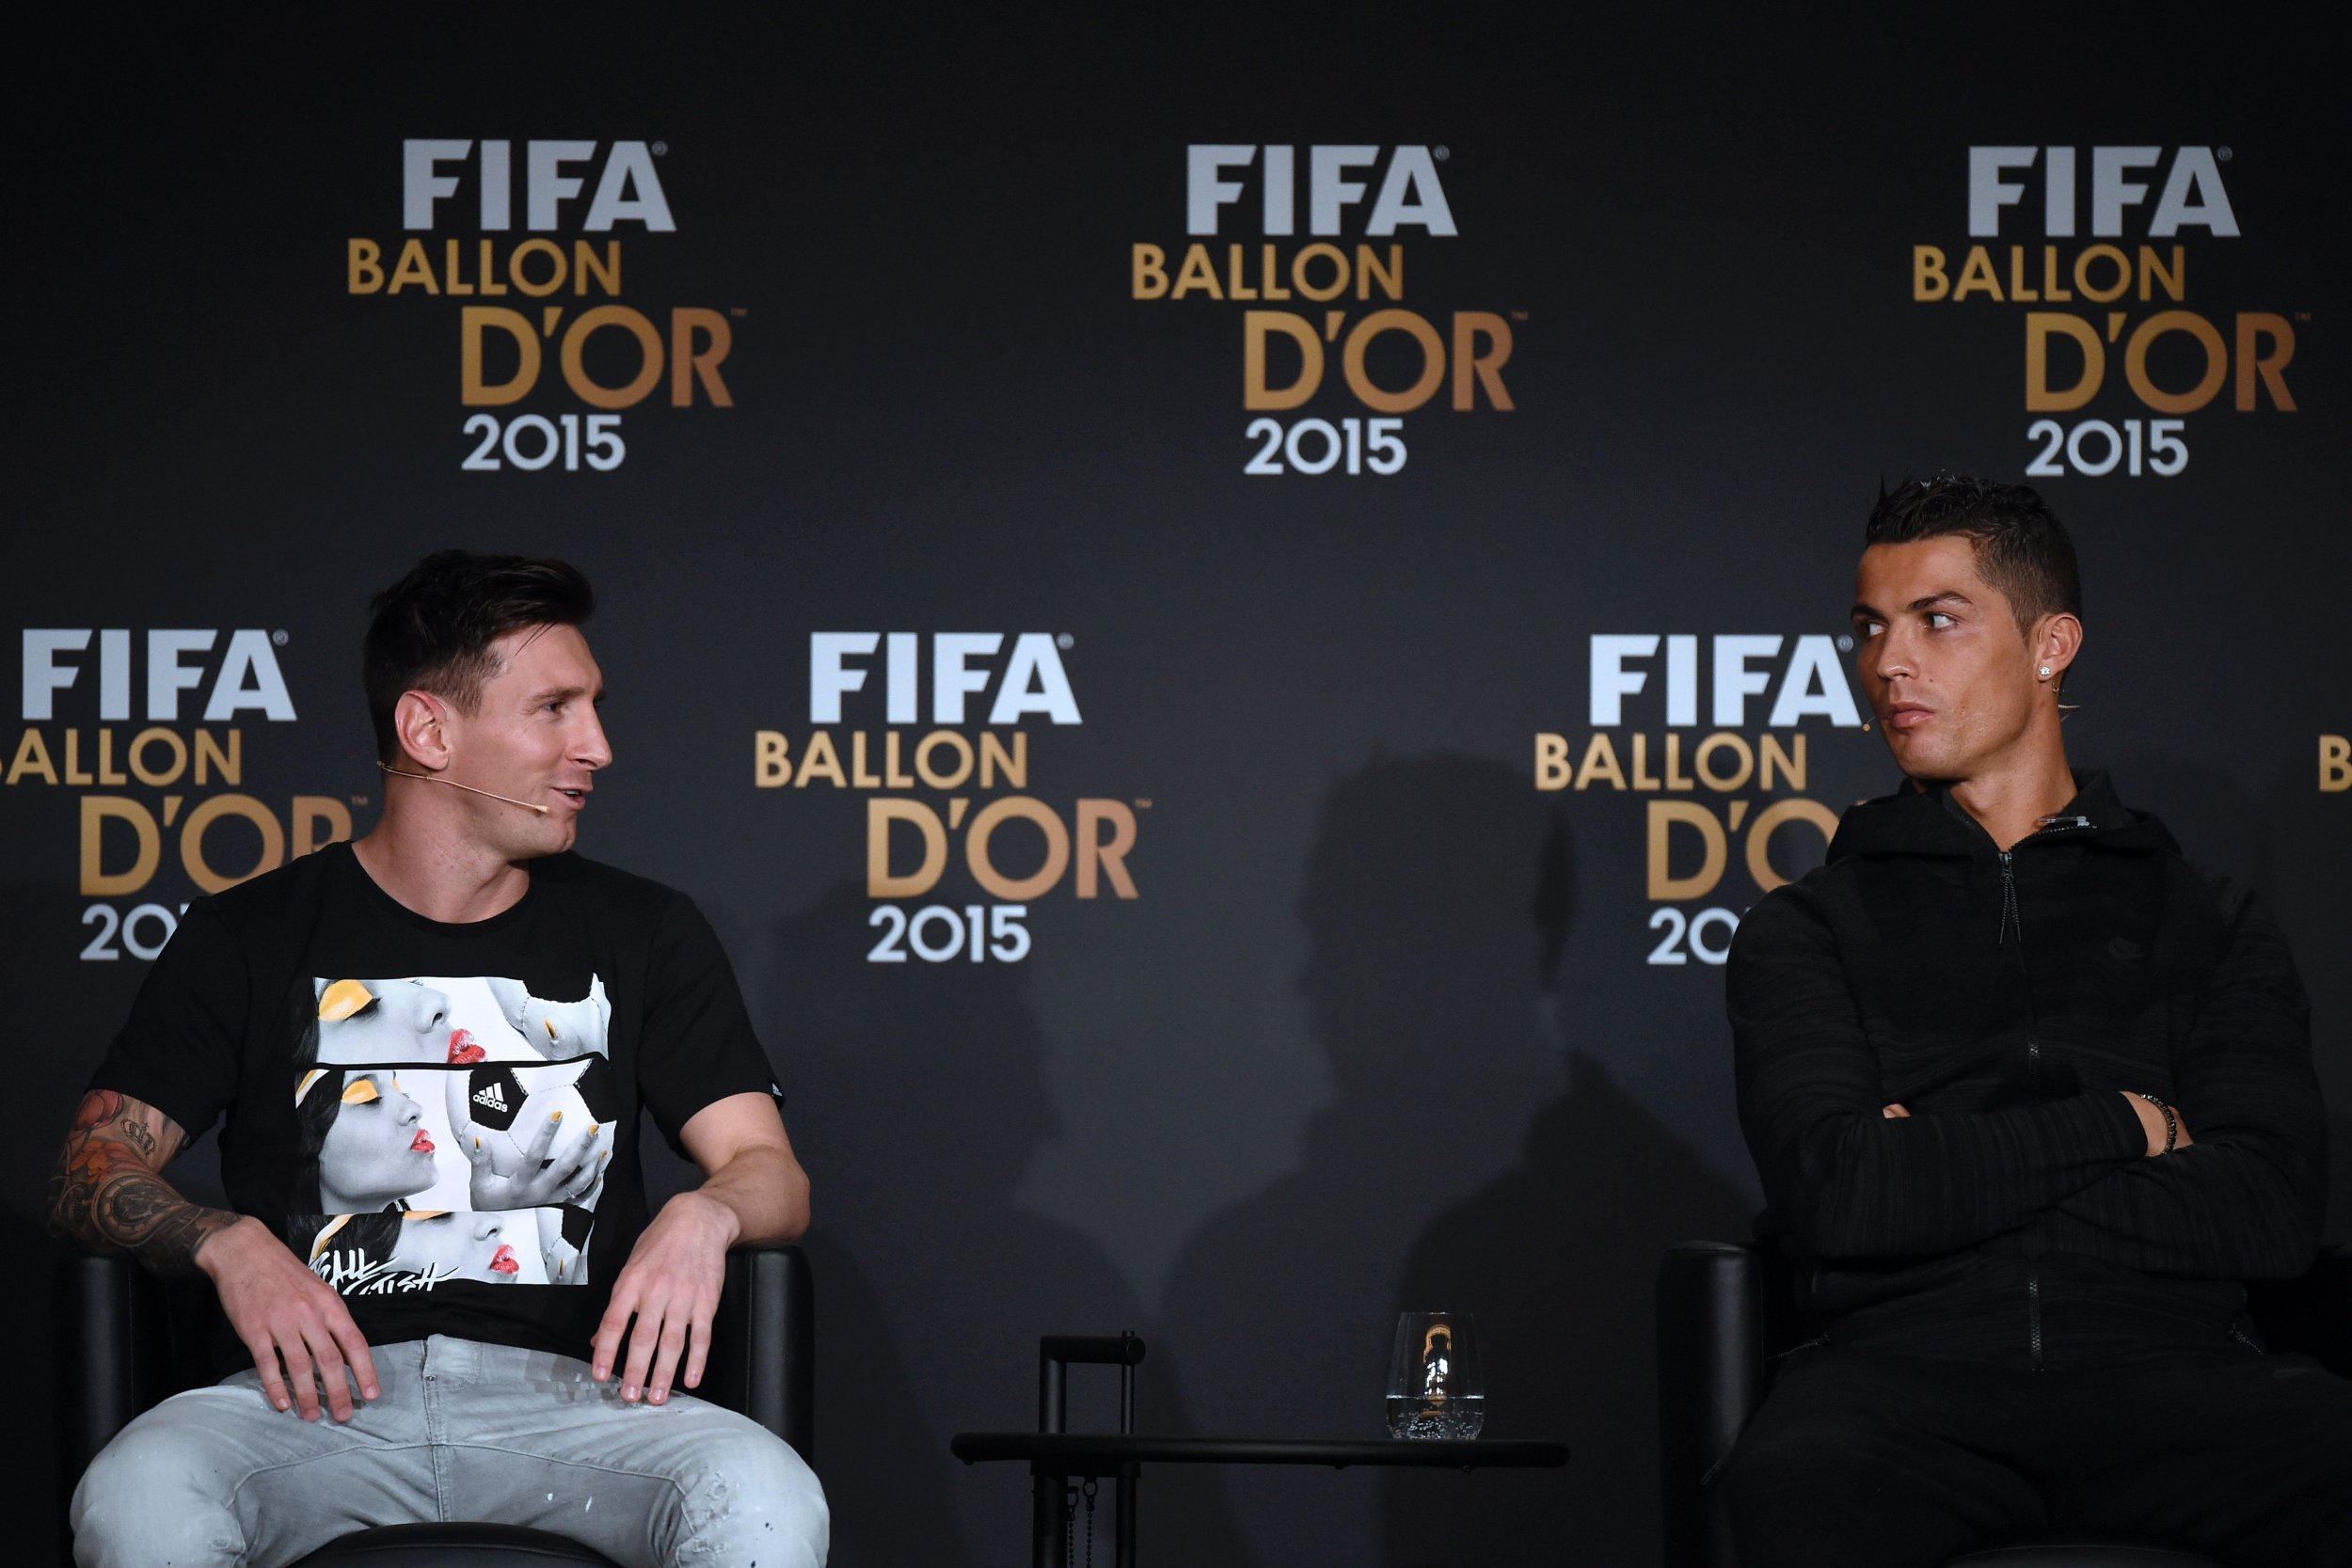 Cristiano Ronaldo Better than Lionel Messi, Says Real Madrid